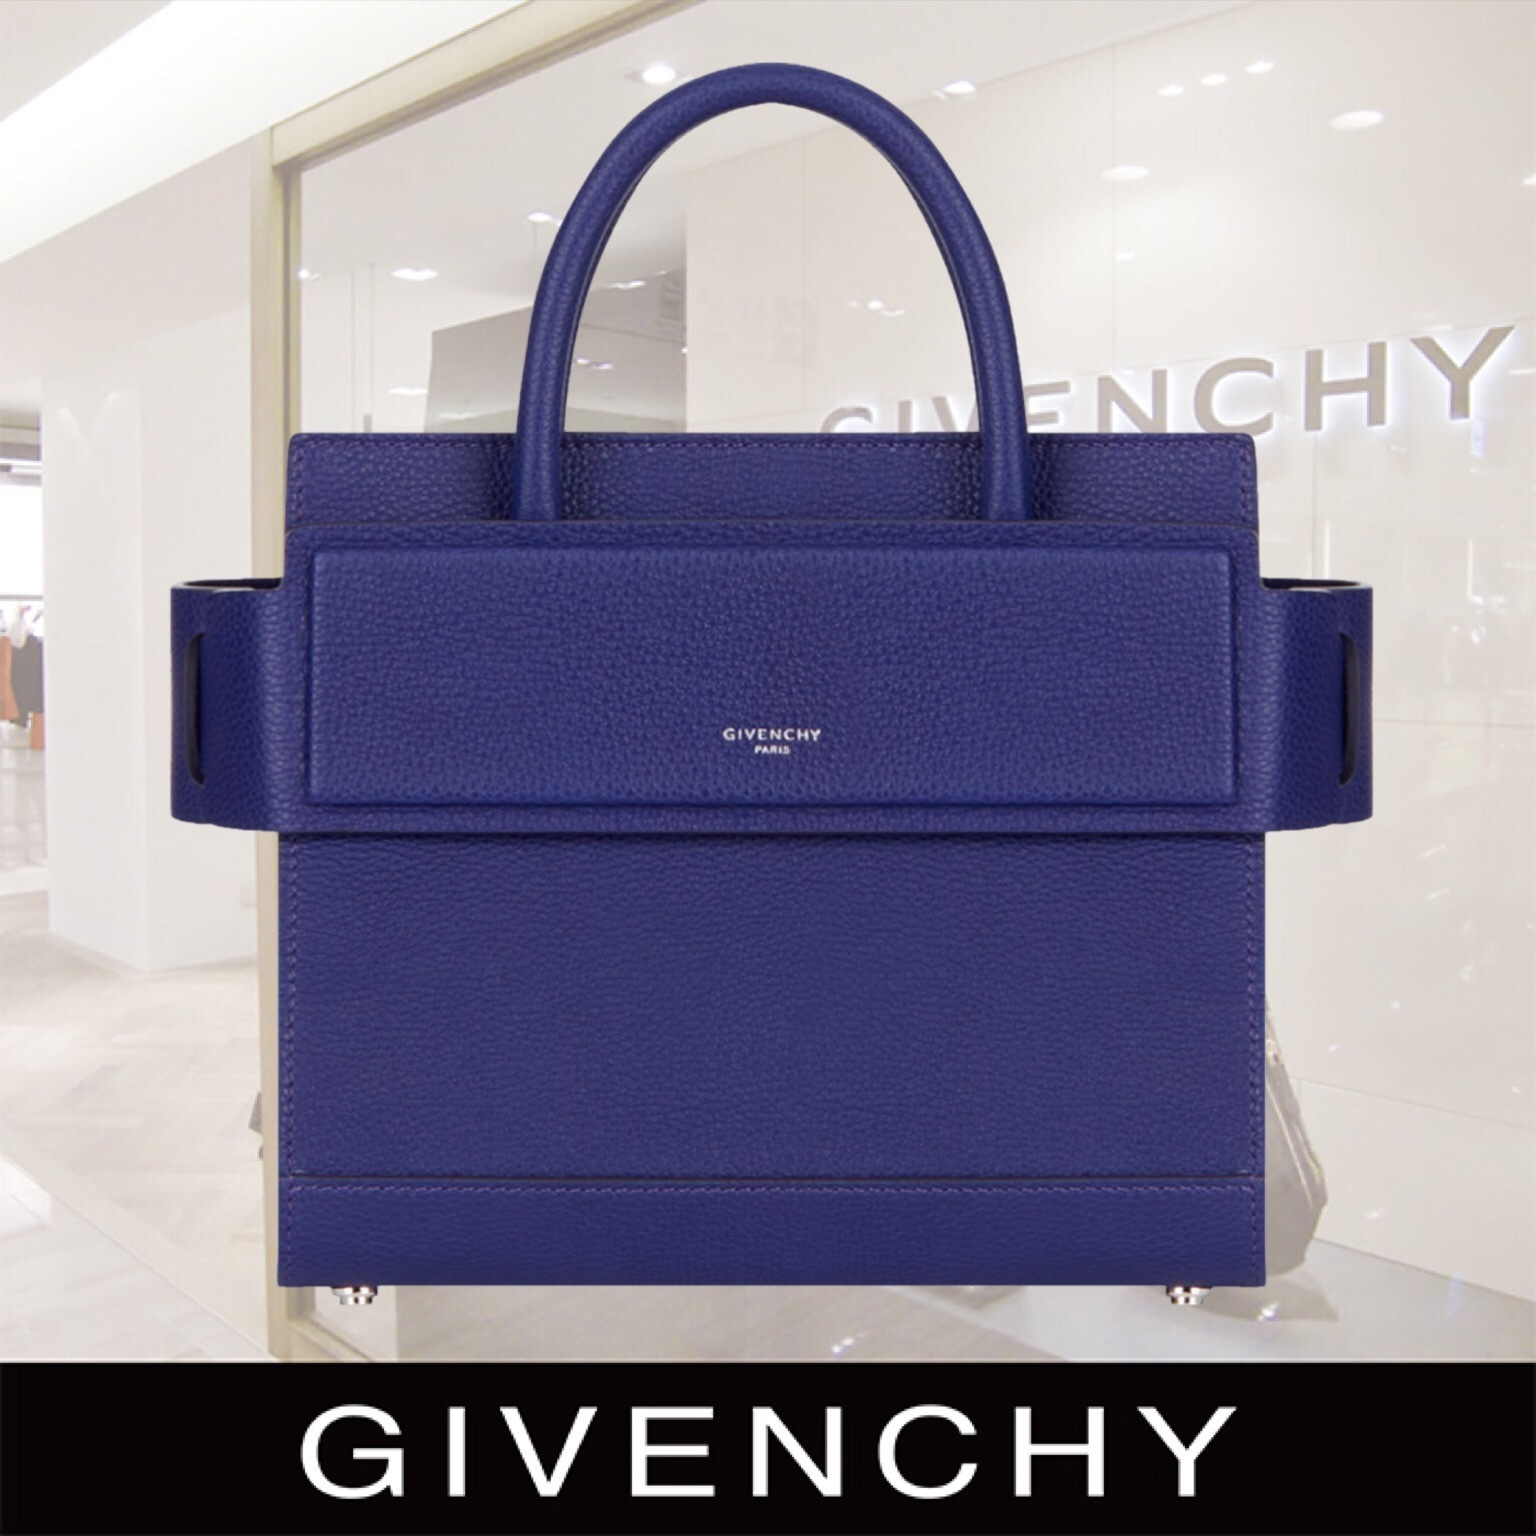 GIVENCHY Mini Horizon Bag 関税送料込